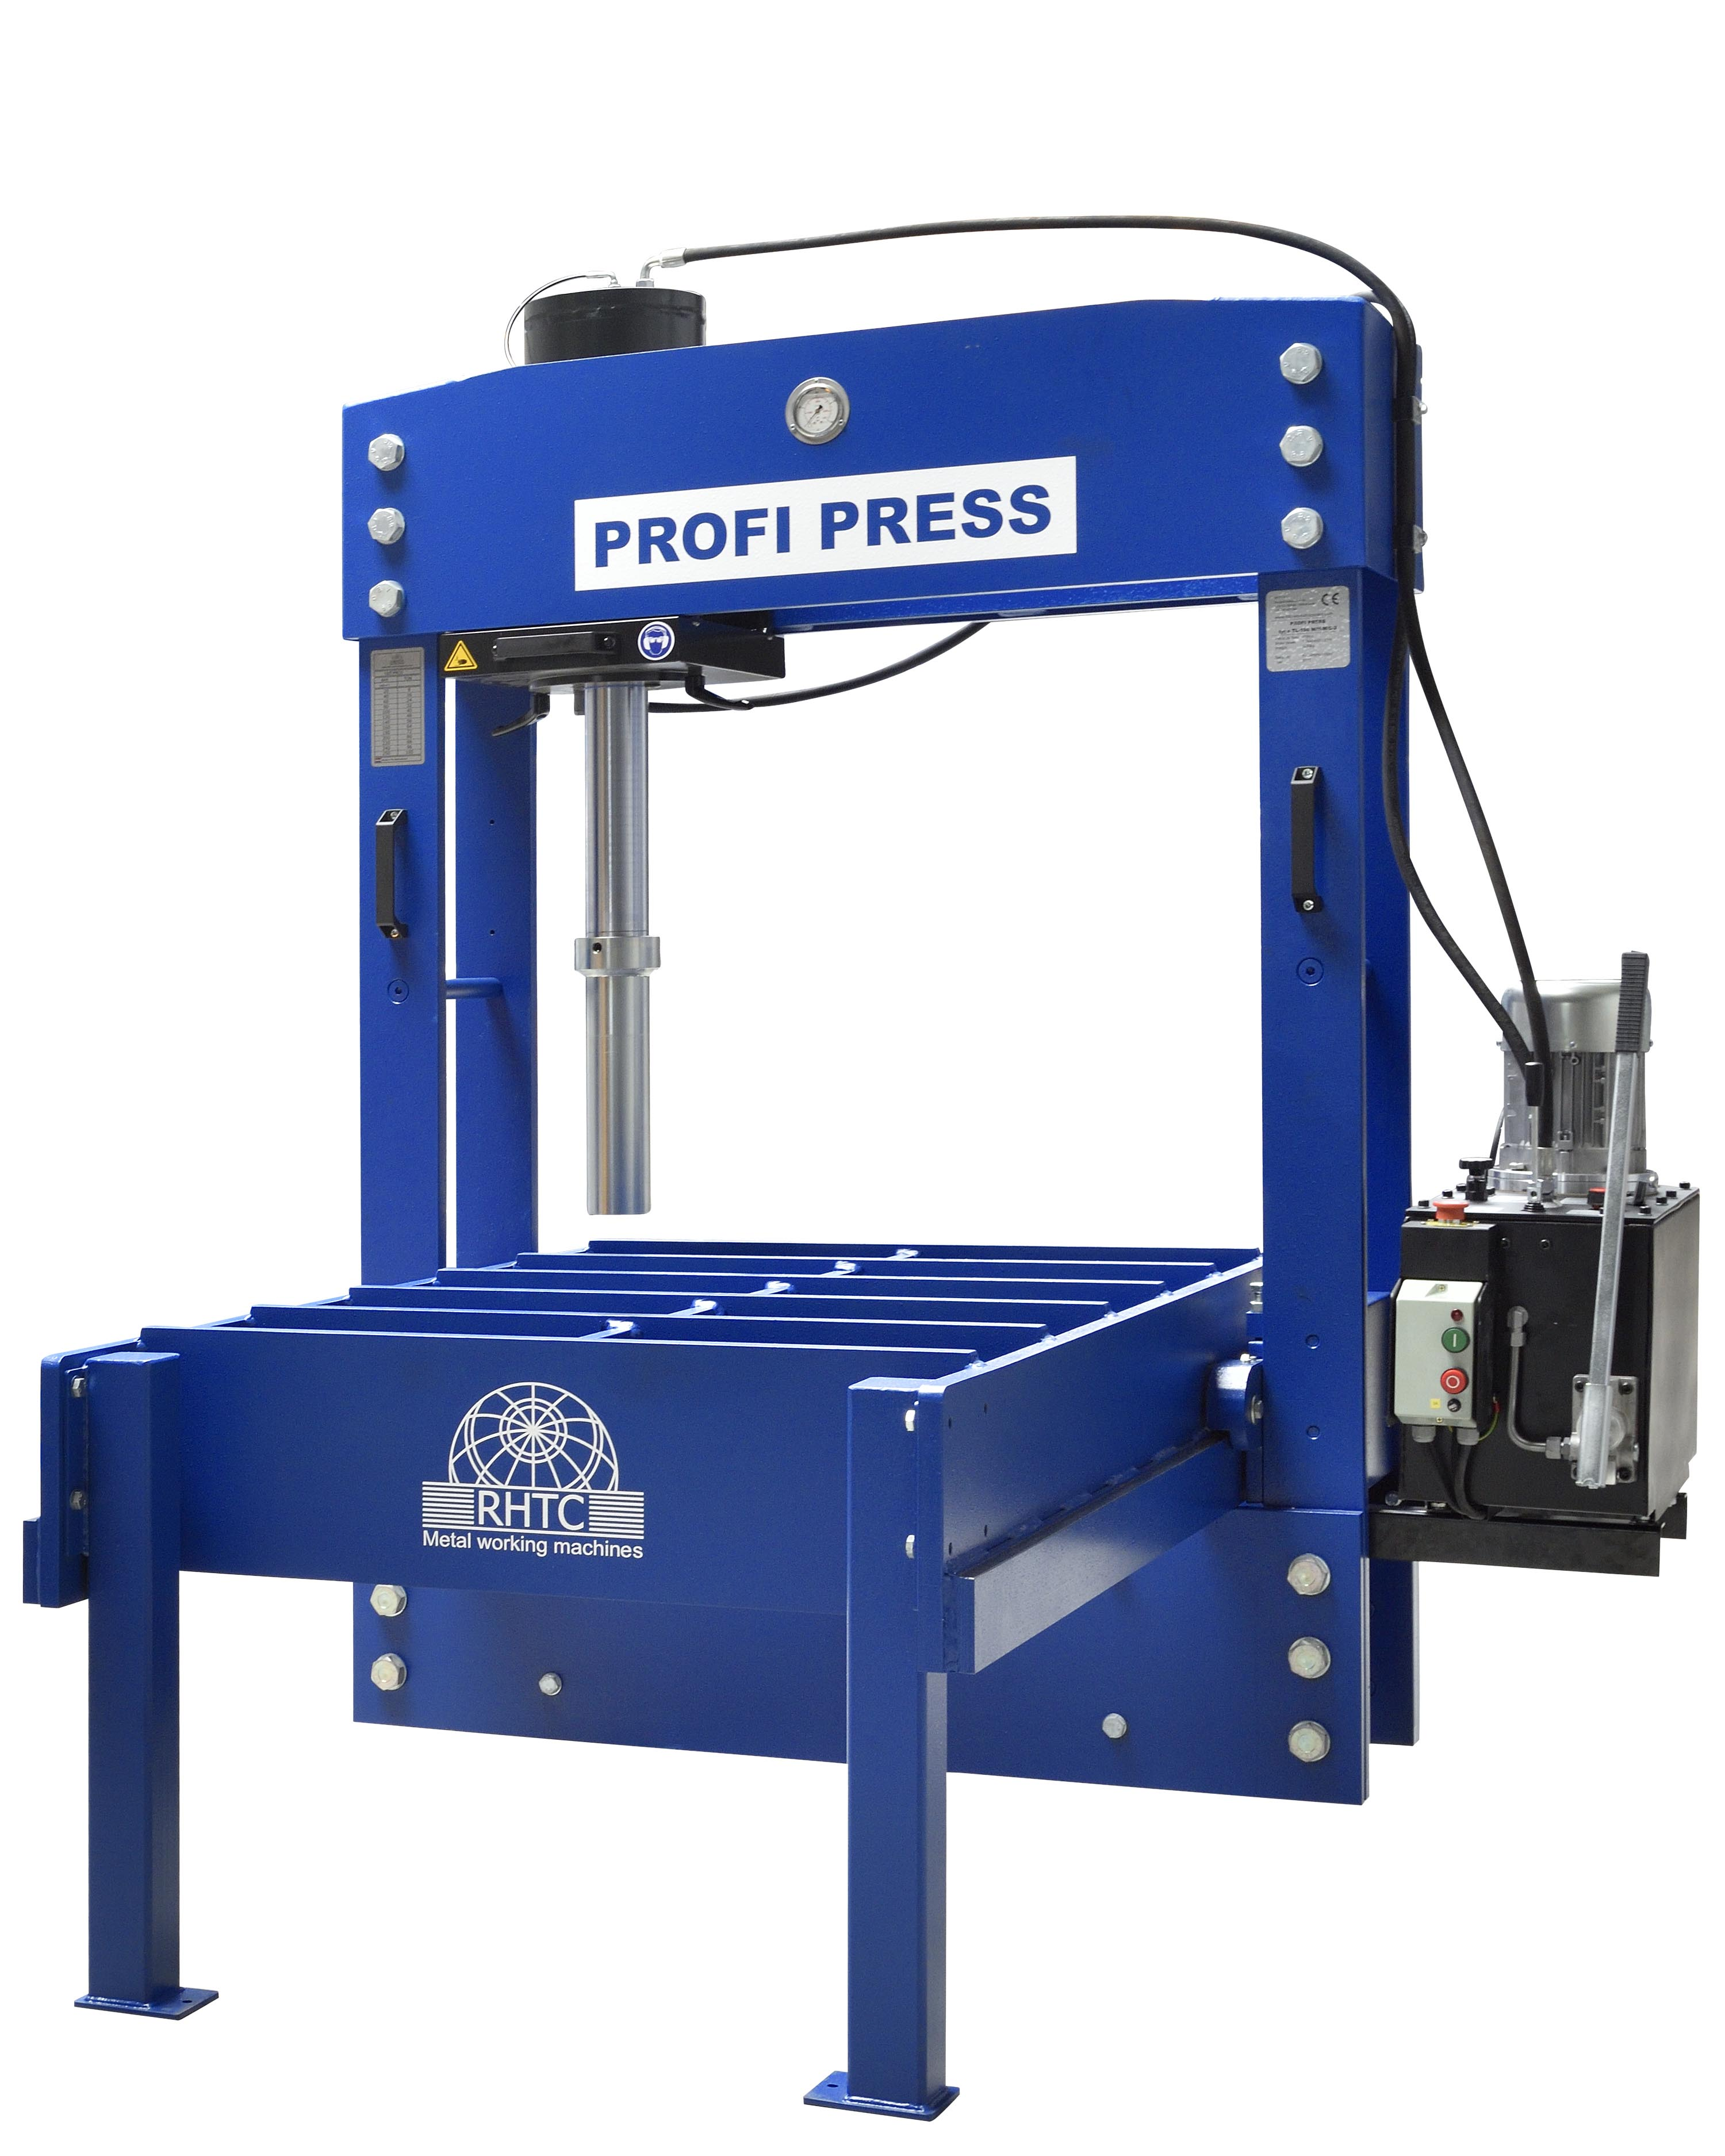 presse hydraulique a portique et tete mobile PROFI PRESS TL 100 RHTC deplacement 2